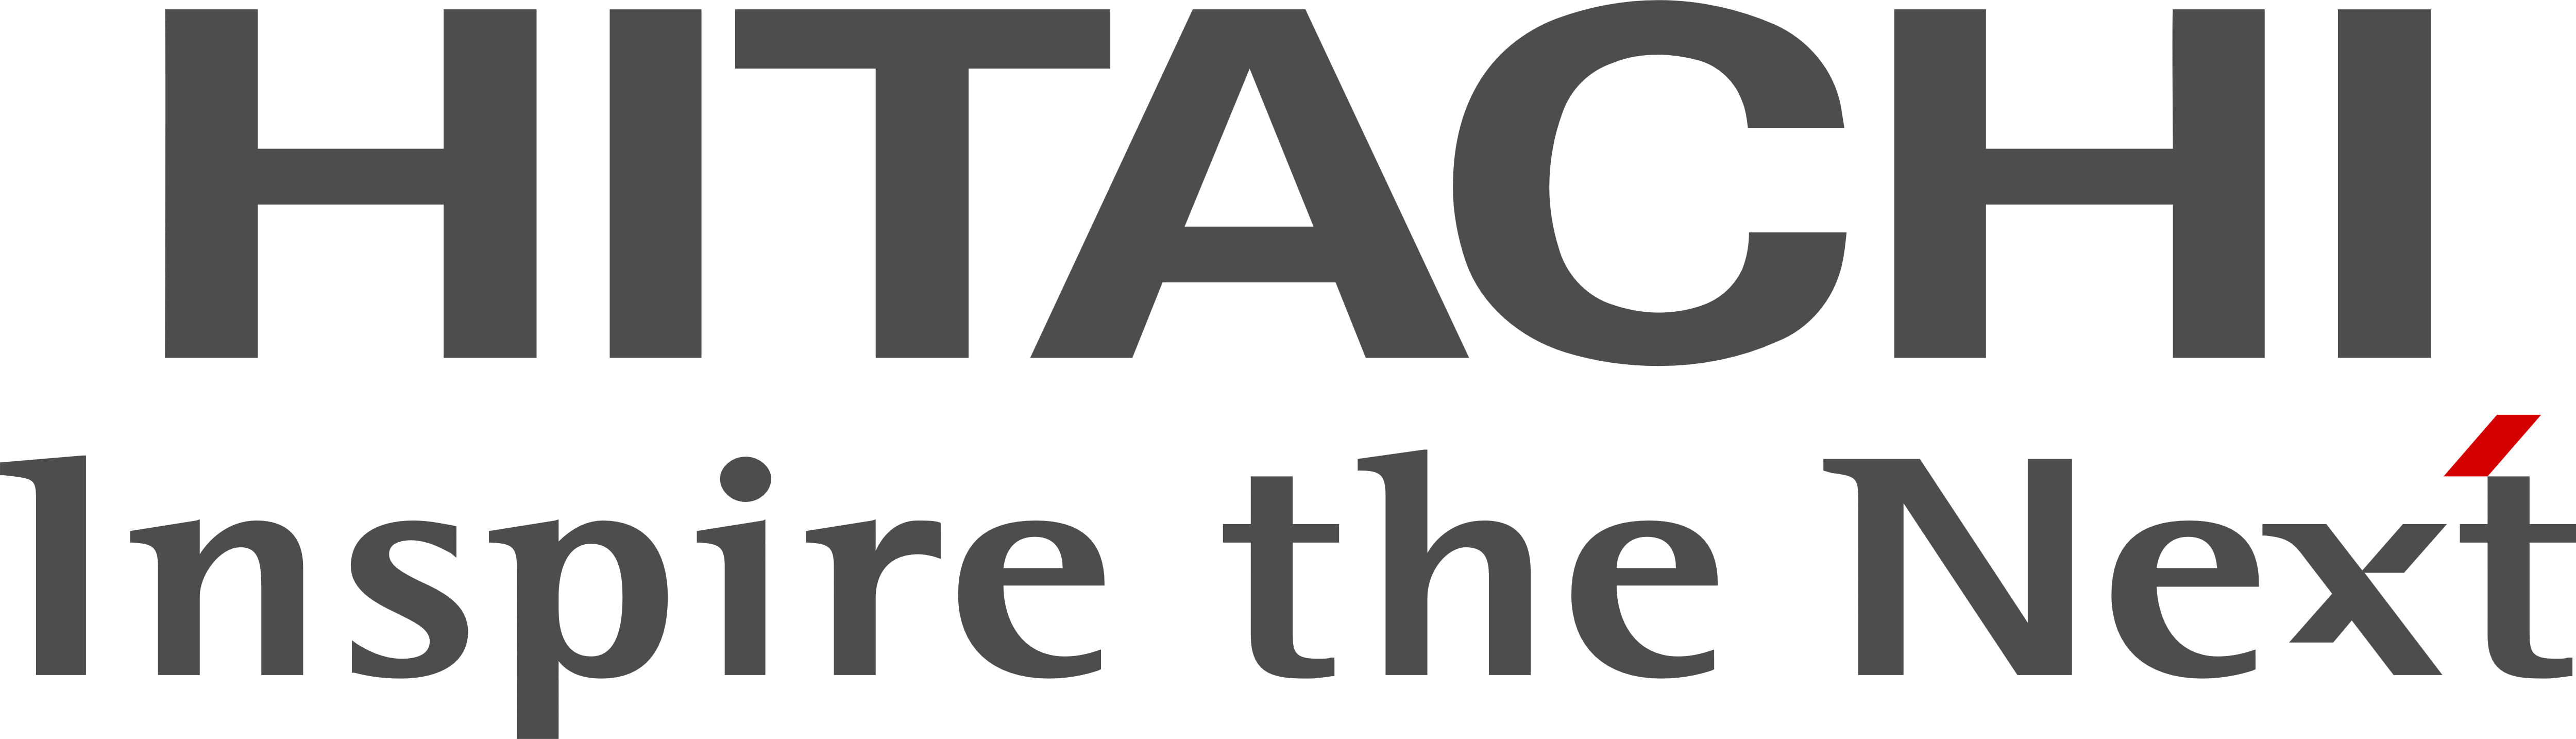 Hitachi_logo_slogan